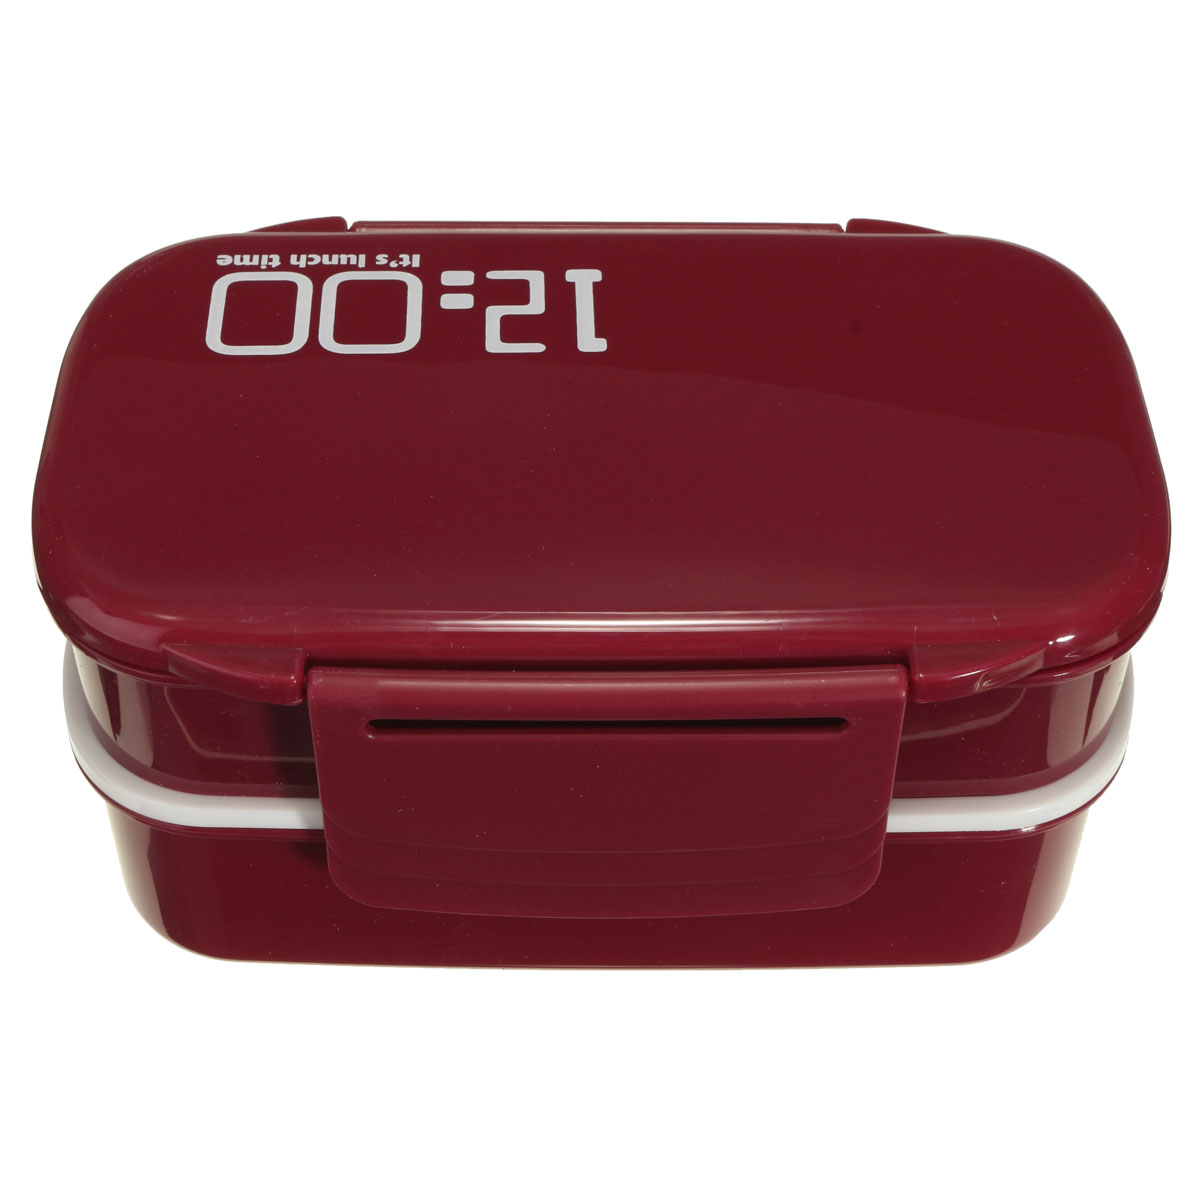 microwave plastic bento lunch box container large storage spoon fork wine red. Black Bedroom Furniture Sets. Home Design Ideas